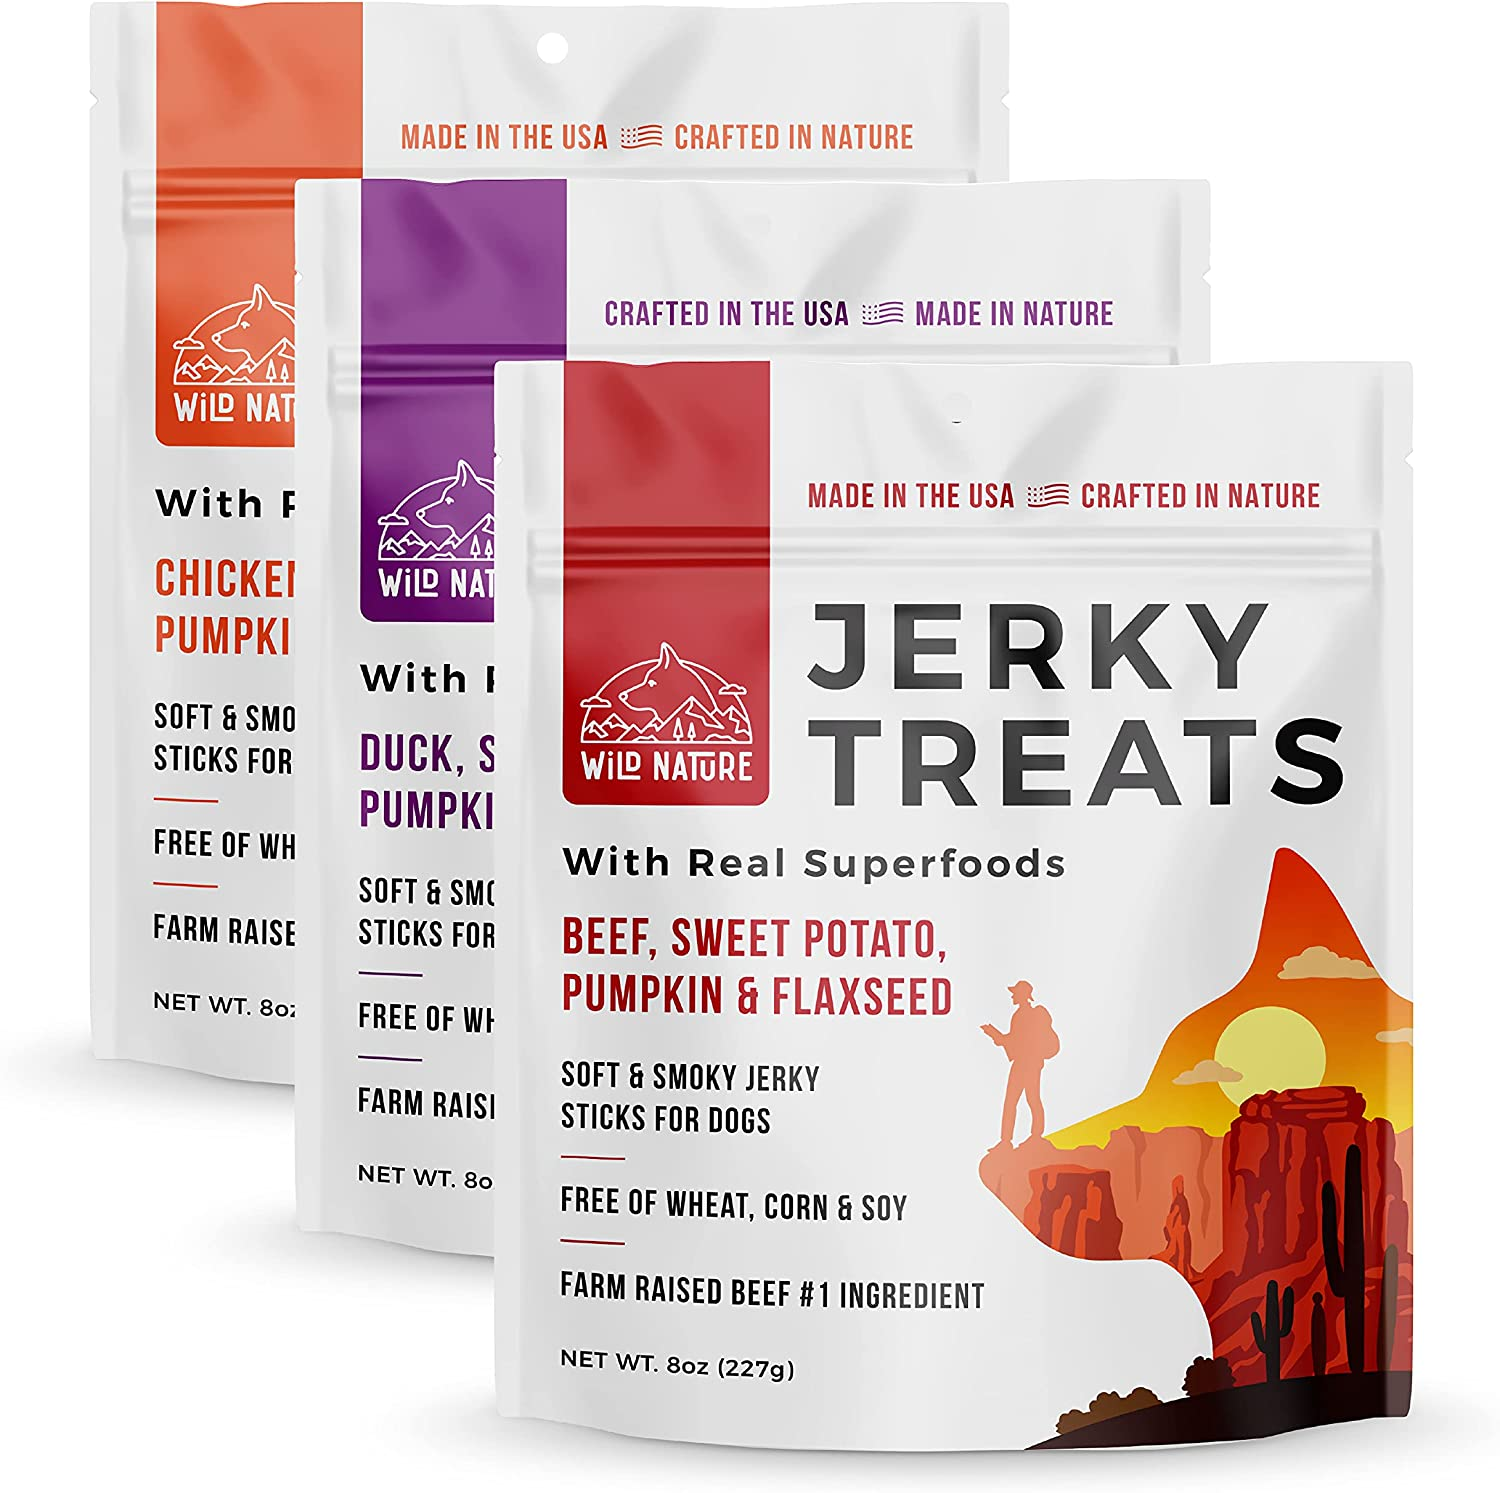 Wild Nature Jerky Dog Treats - Chicken, Beef, and Duck Dog Jerky Treats with Superfoods Variety Pack Made in The USA Soft Dog Jerky Sticks Grain Free for Medium Dogs, Small and Large